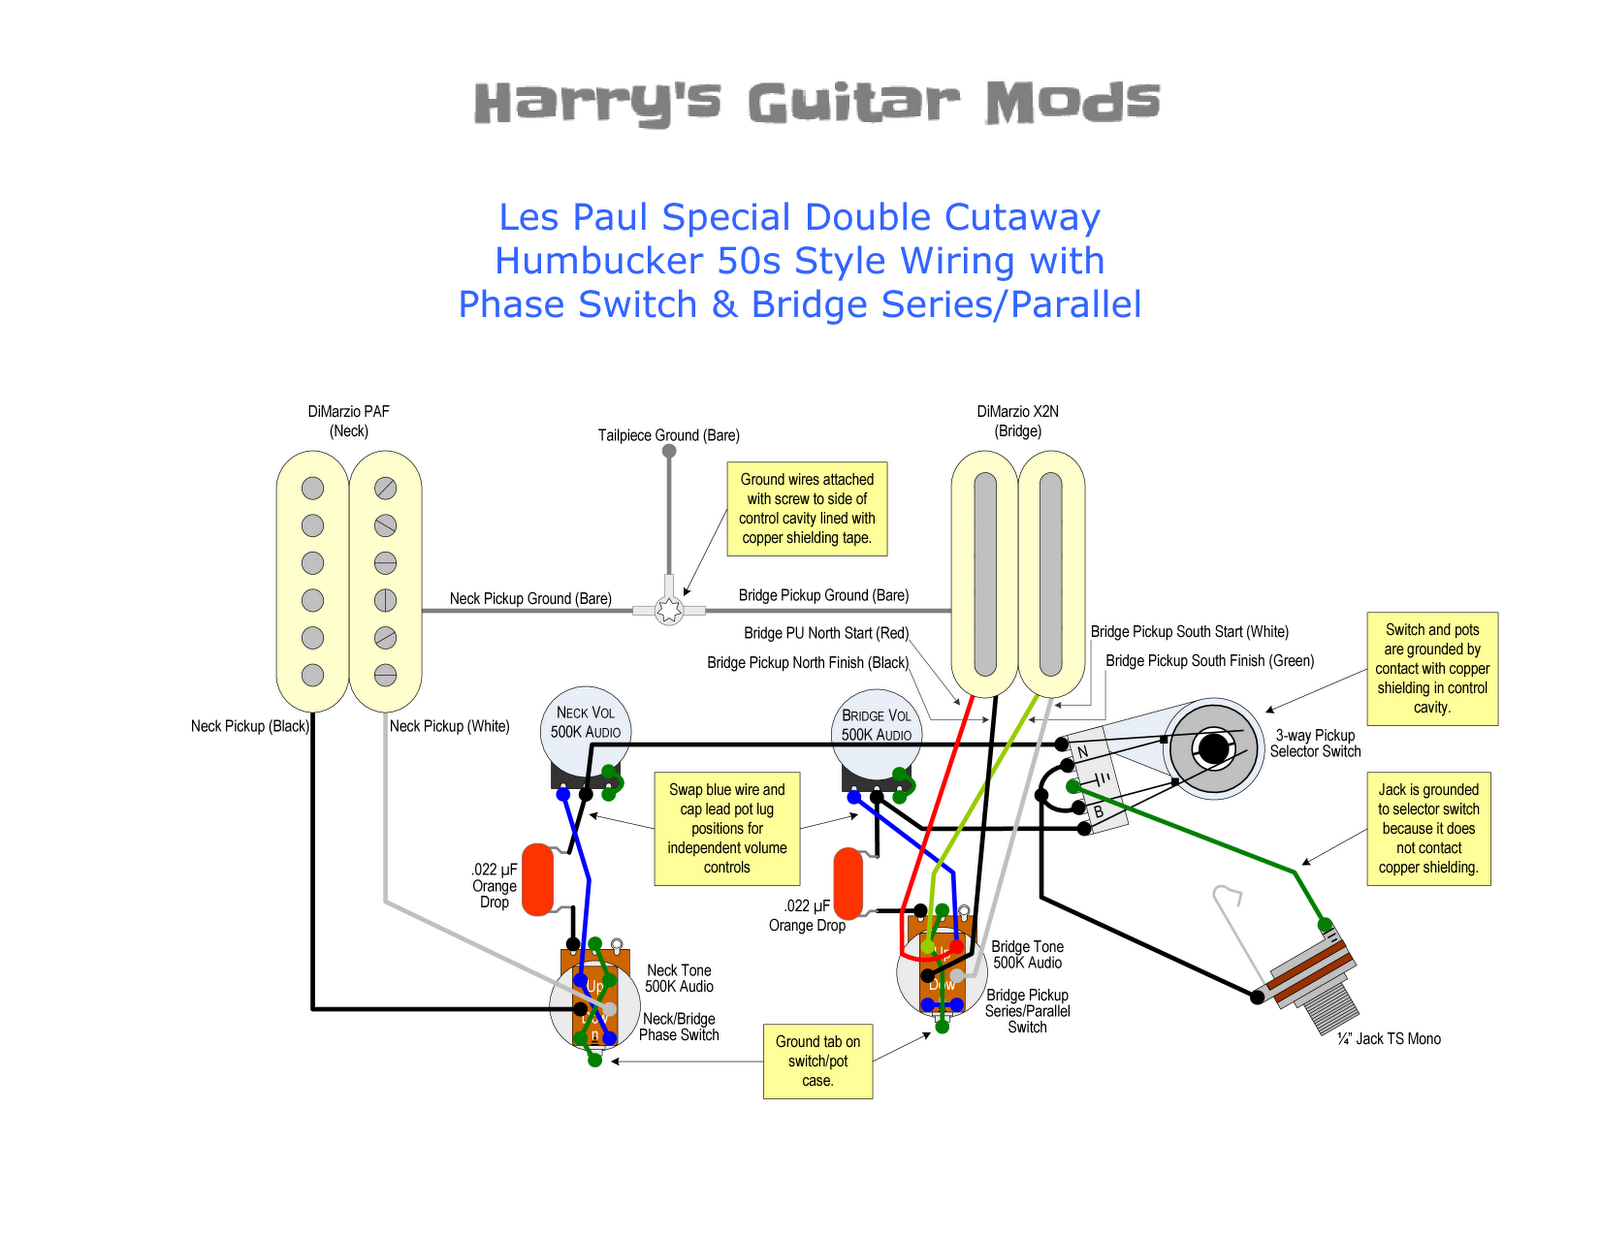 LPS+Wiring+Diagram harry's guitar mods controls wiring upgrade Les Paul Classic Wiring Diagram at gsmx.co